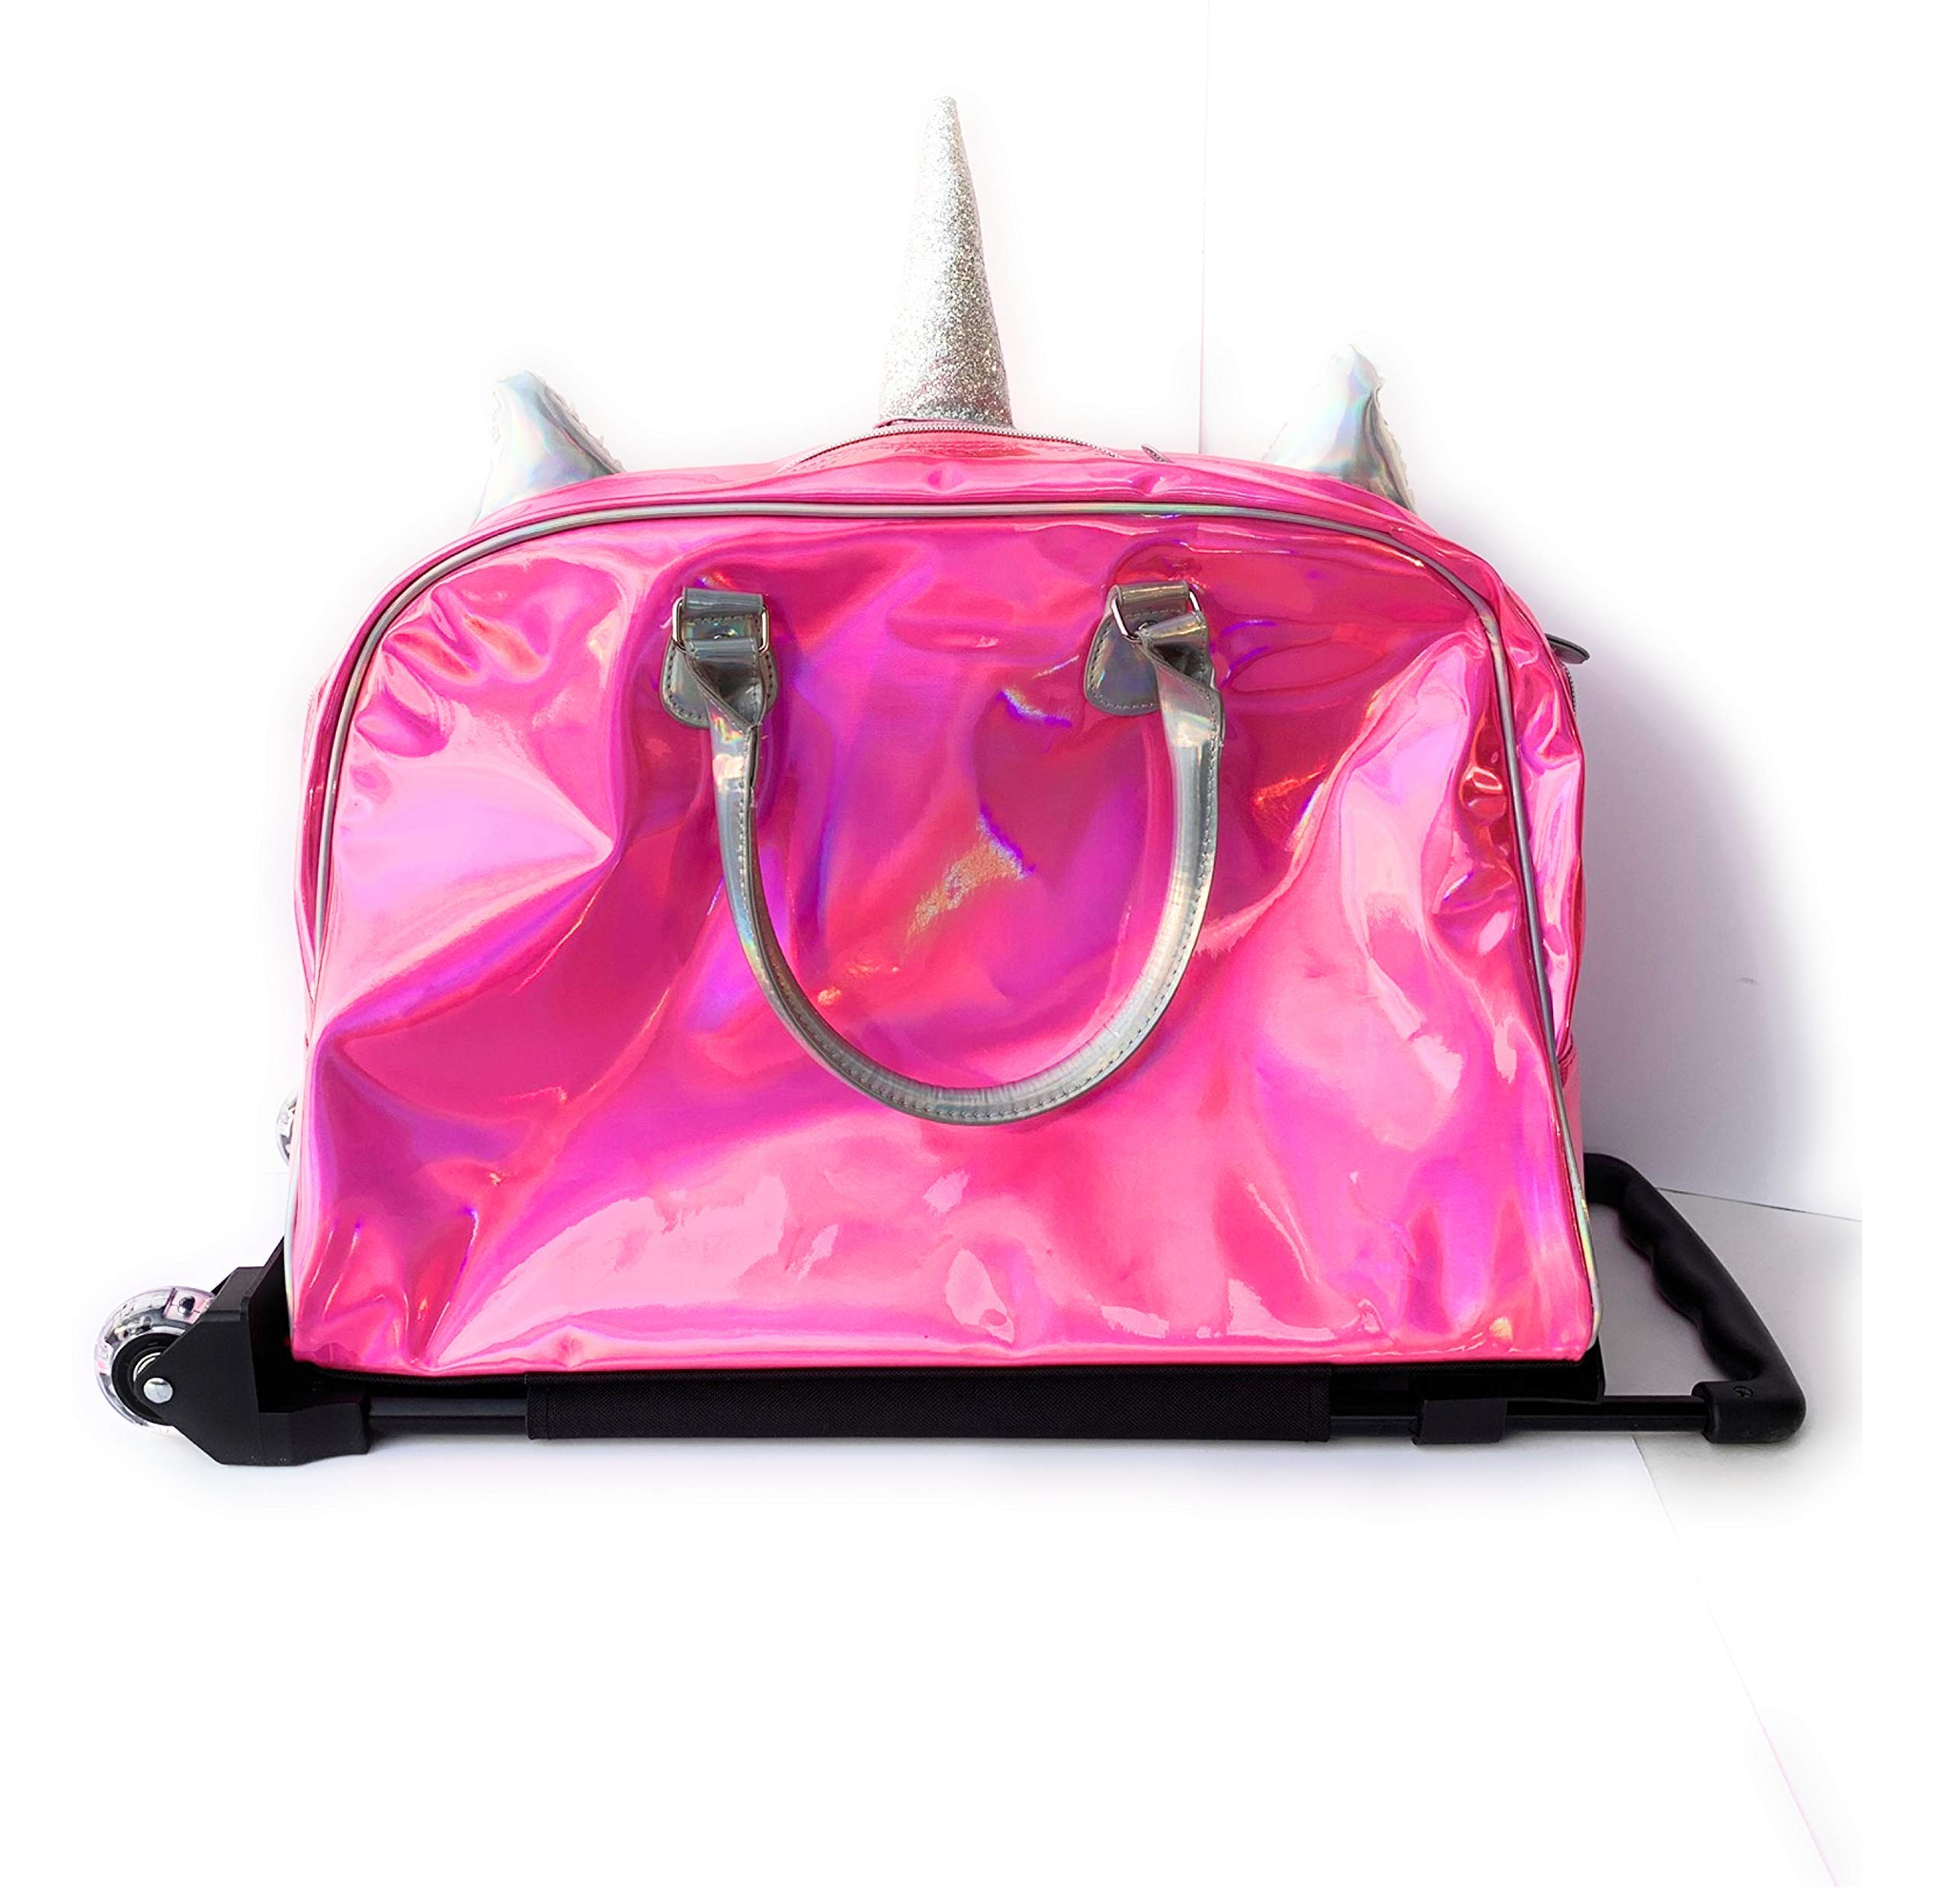 Justice Girls Exclusive Pink Reversible Seqiun Unicorn Carry On Luggage Suitcase Travel Bag by Justice (Image #4)